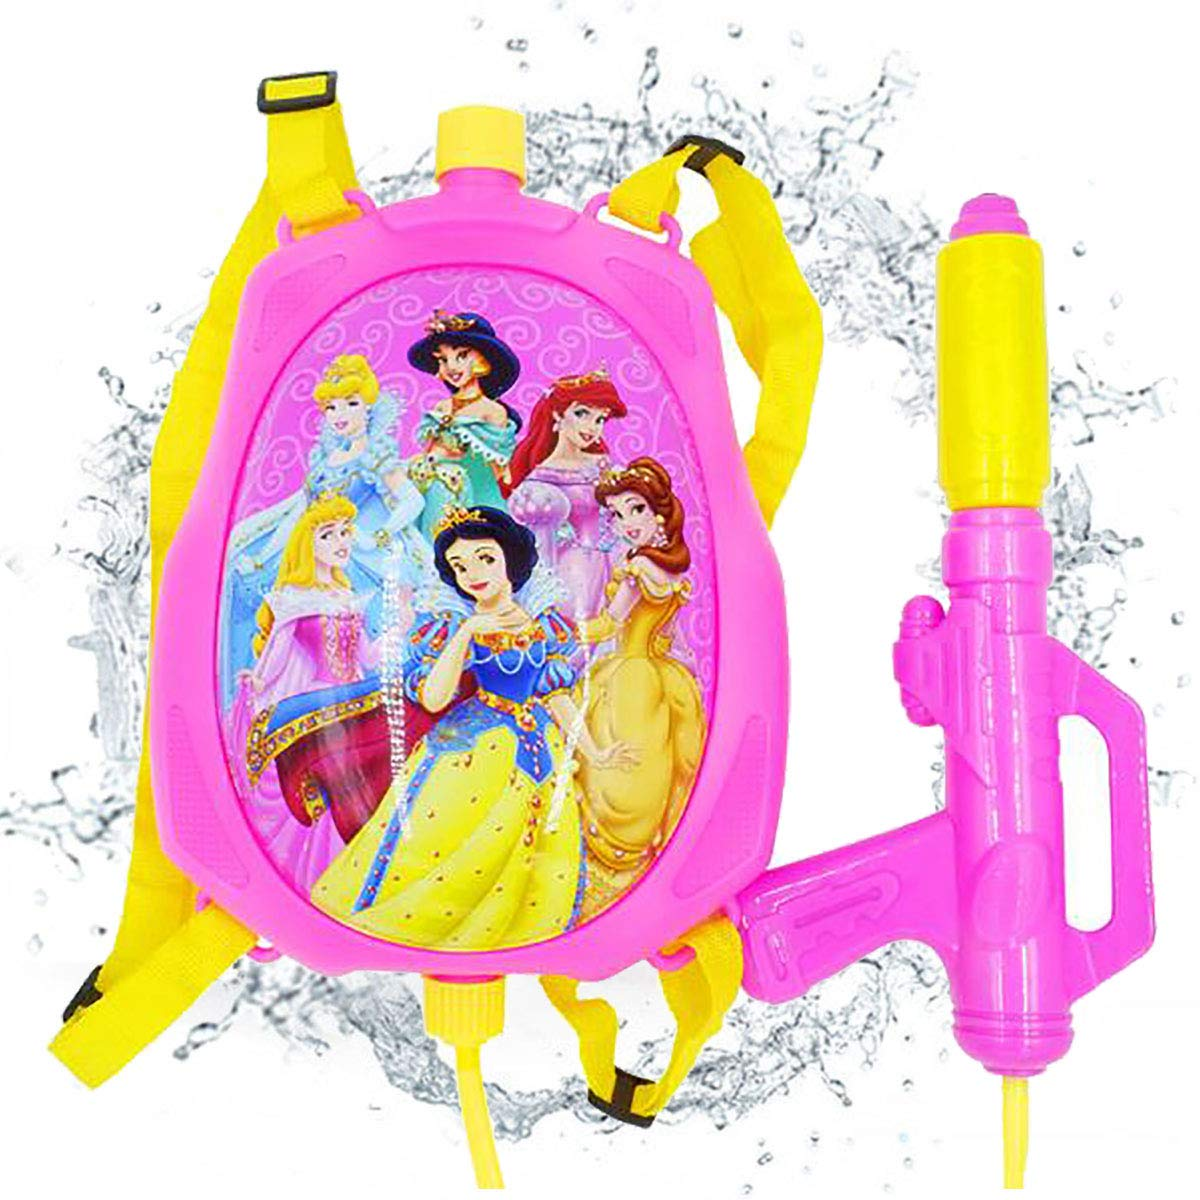 IDOXE Backpack Water Gun for Kids. Let Your Children Have Fun with High Capacity Super Soaker Squirt Gun. Enjoy Water Fight in Swimming Pool & Beach. ... (Princess)